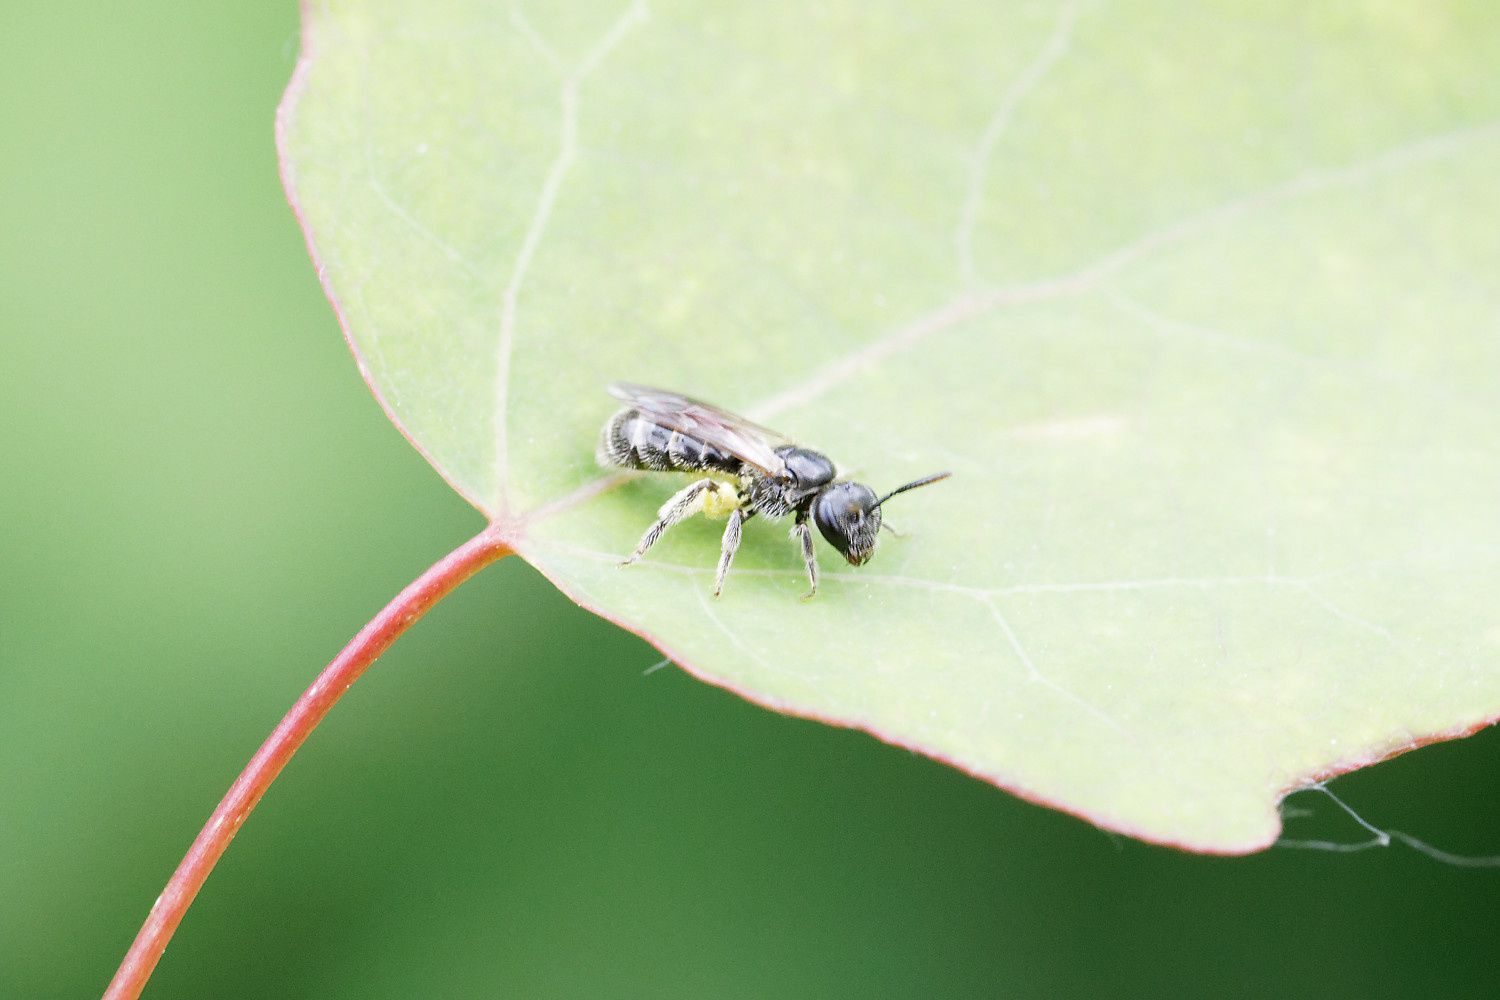 Halictide, Lasioglossum sp possible